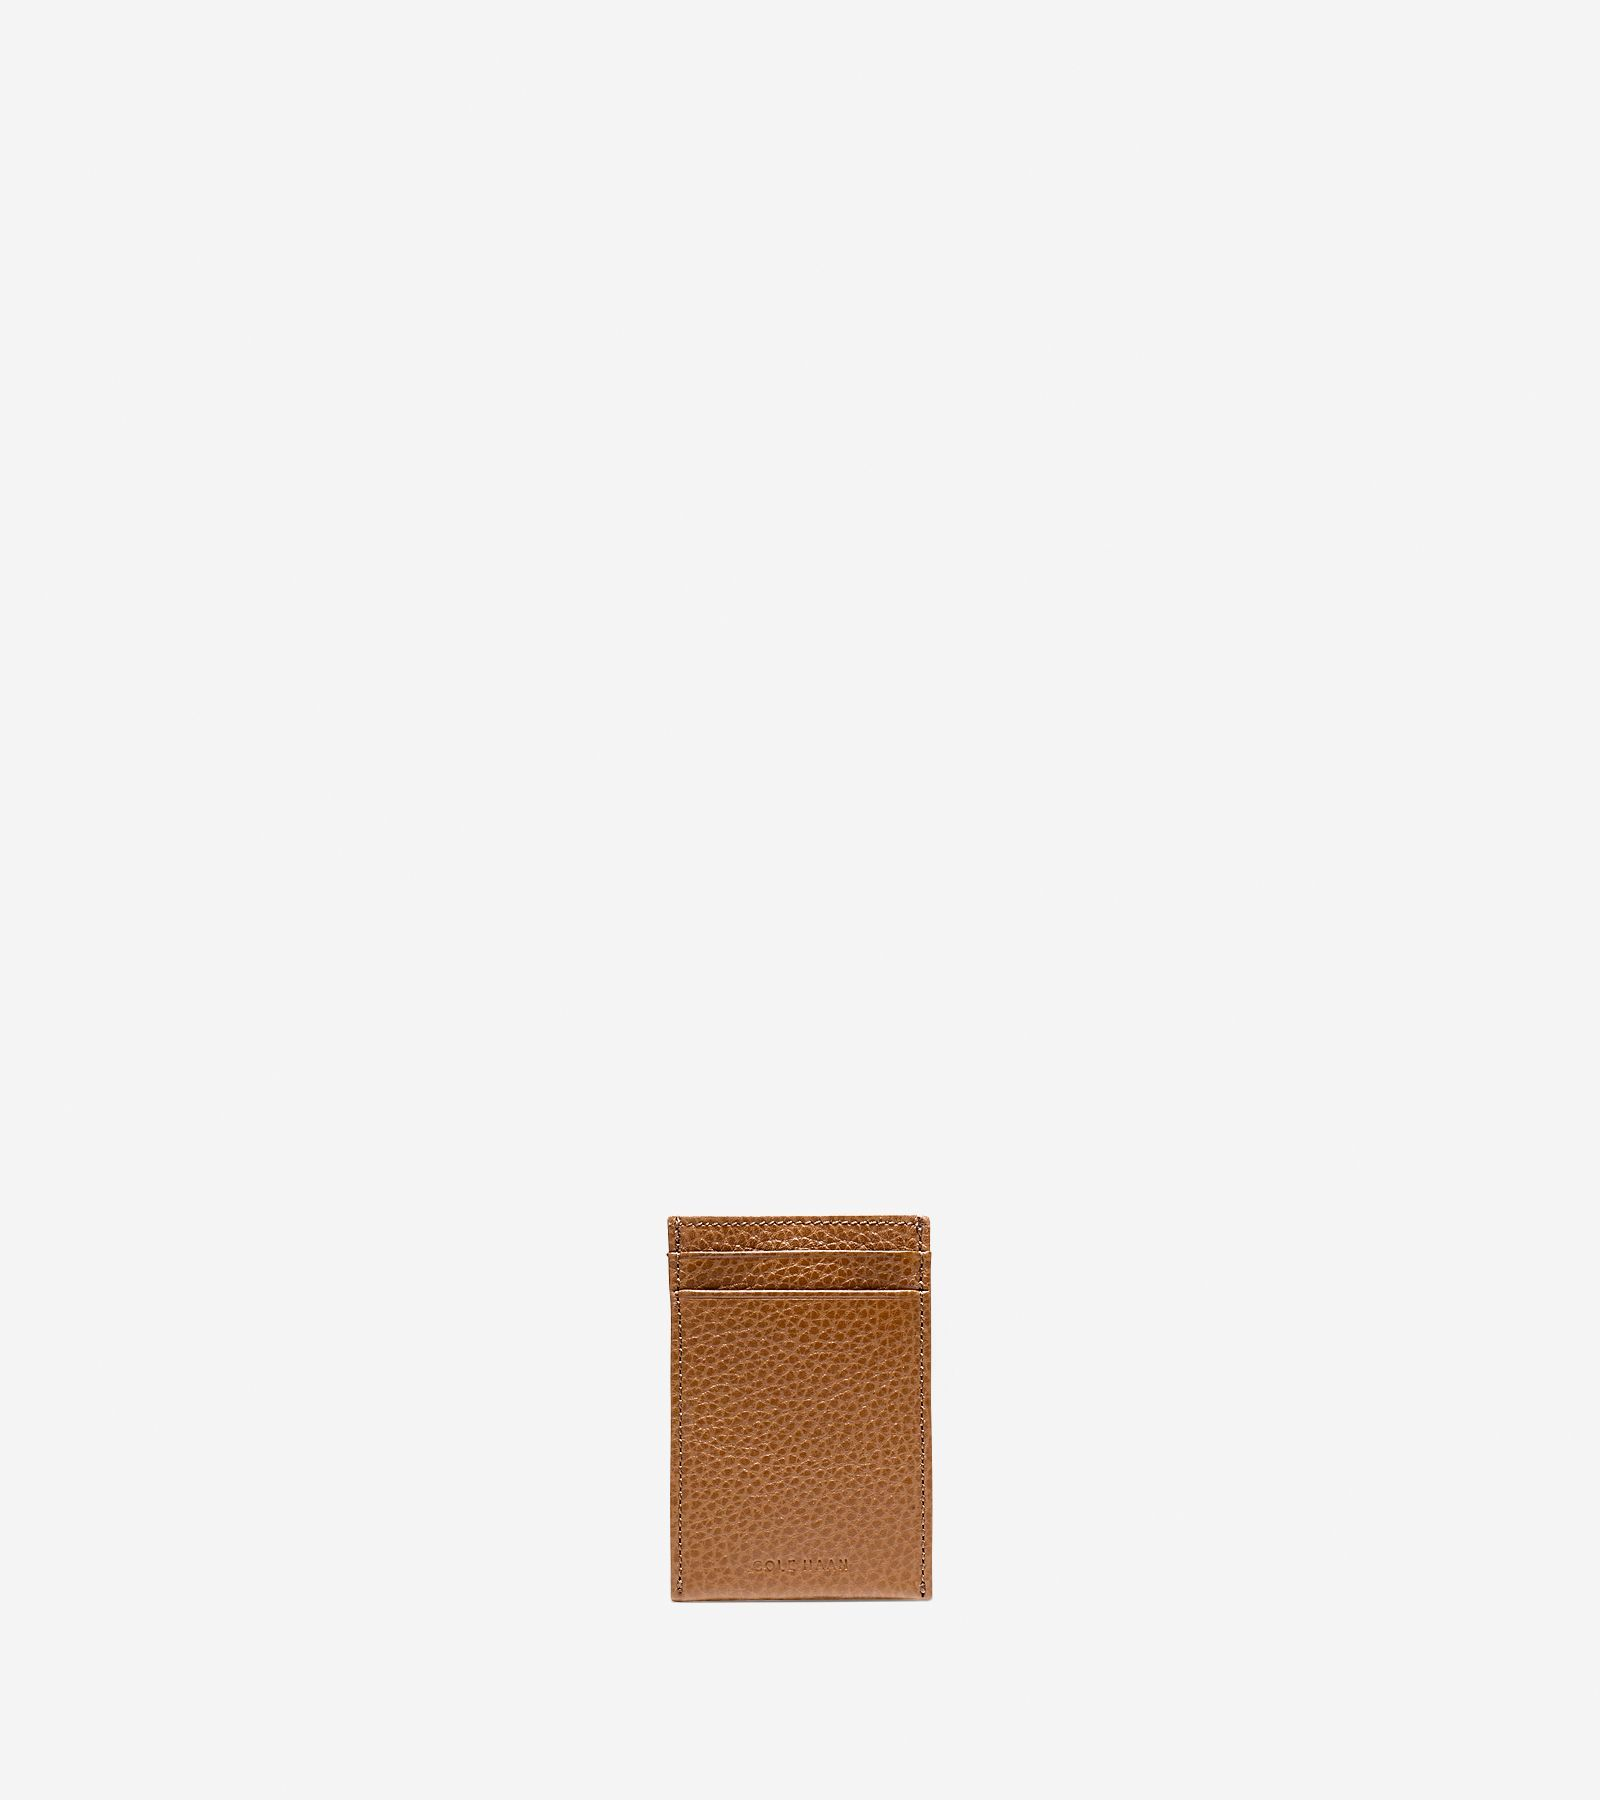 Wayland Card Case With Money Clip | Products | Pinterest | Money ...